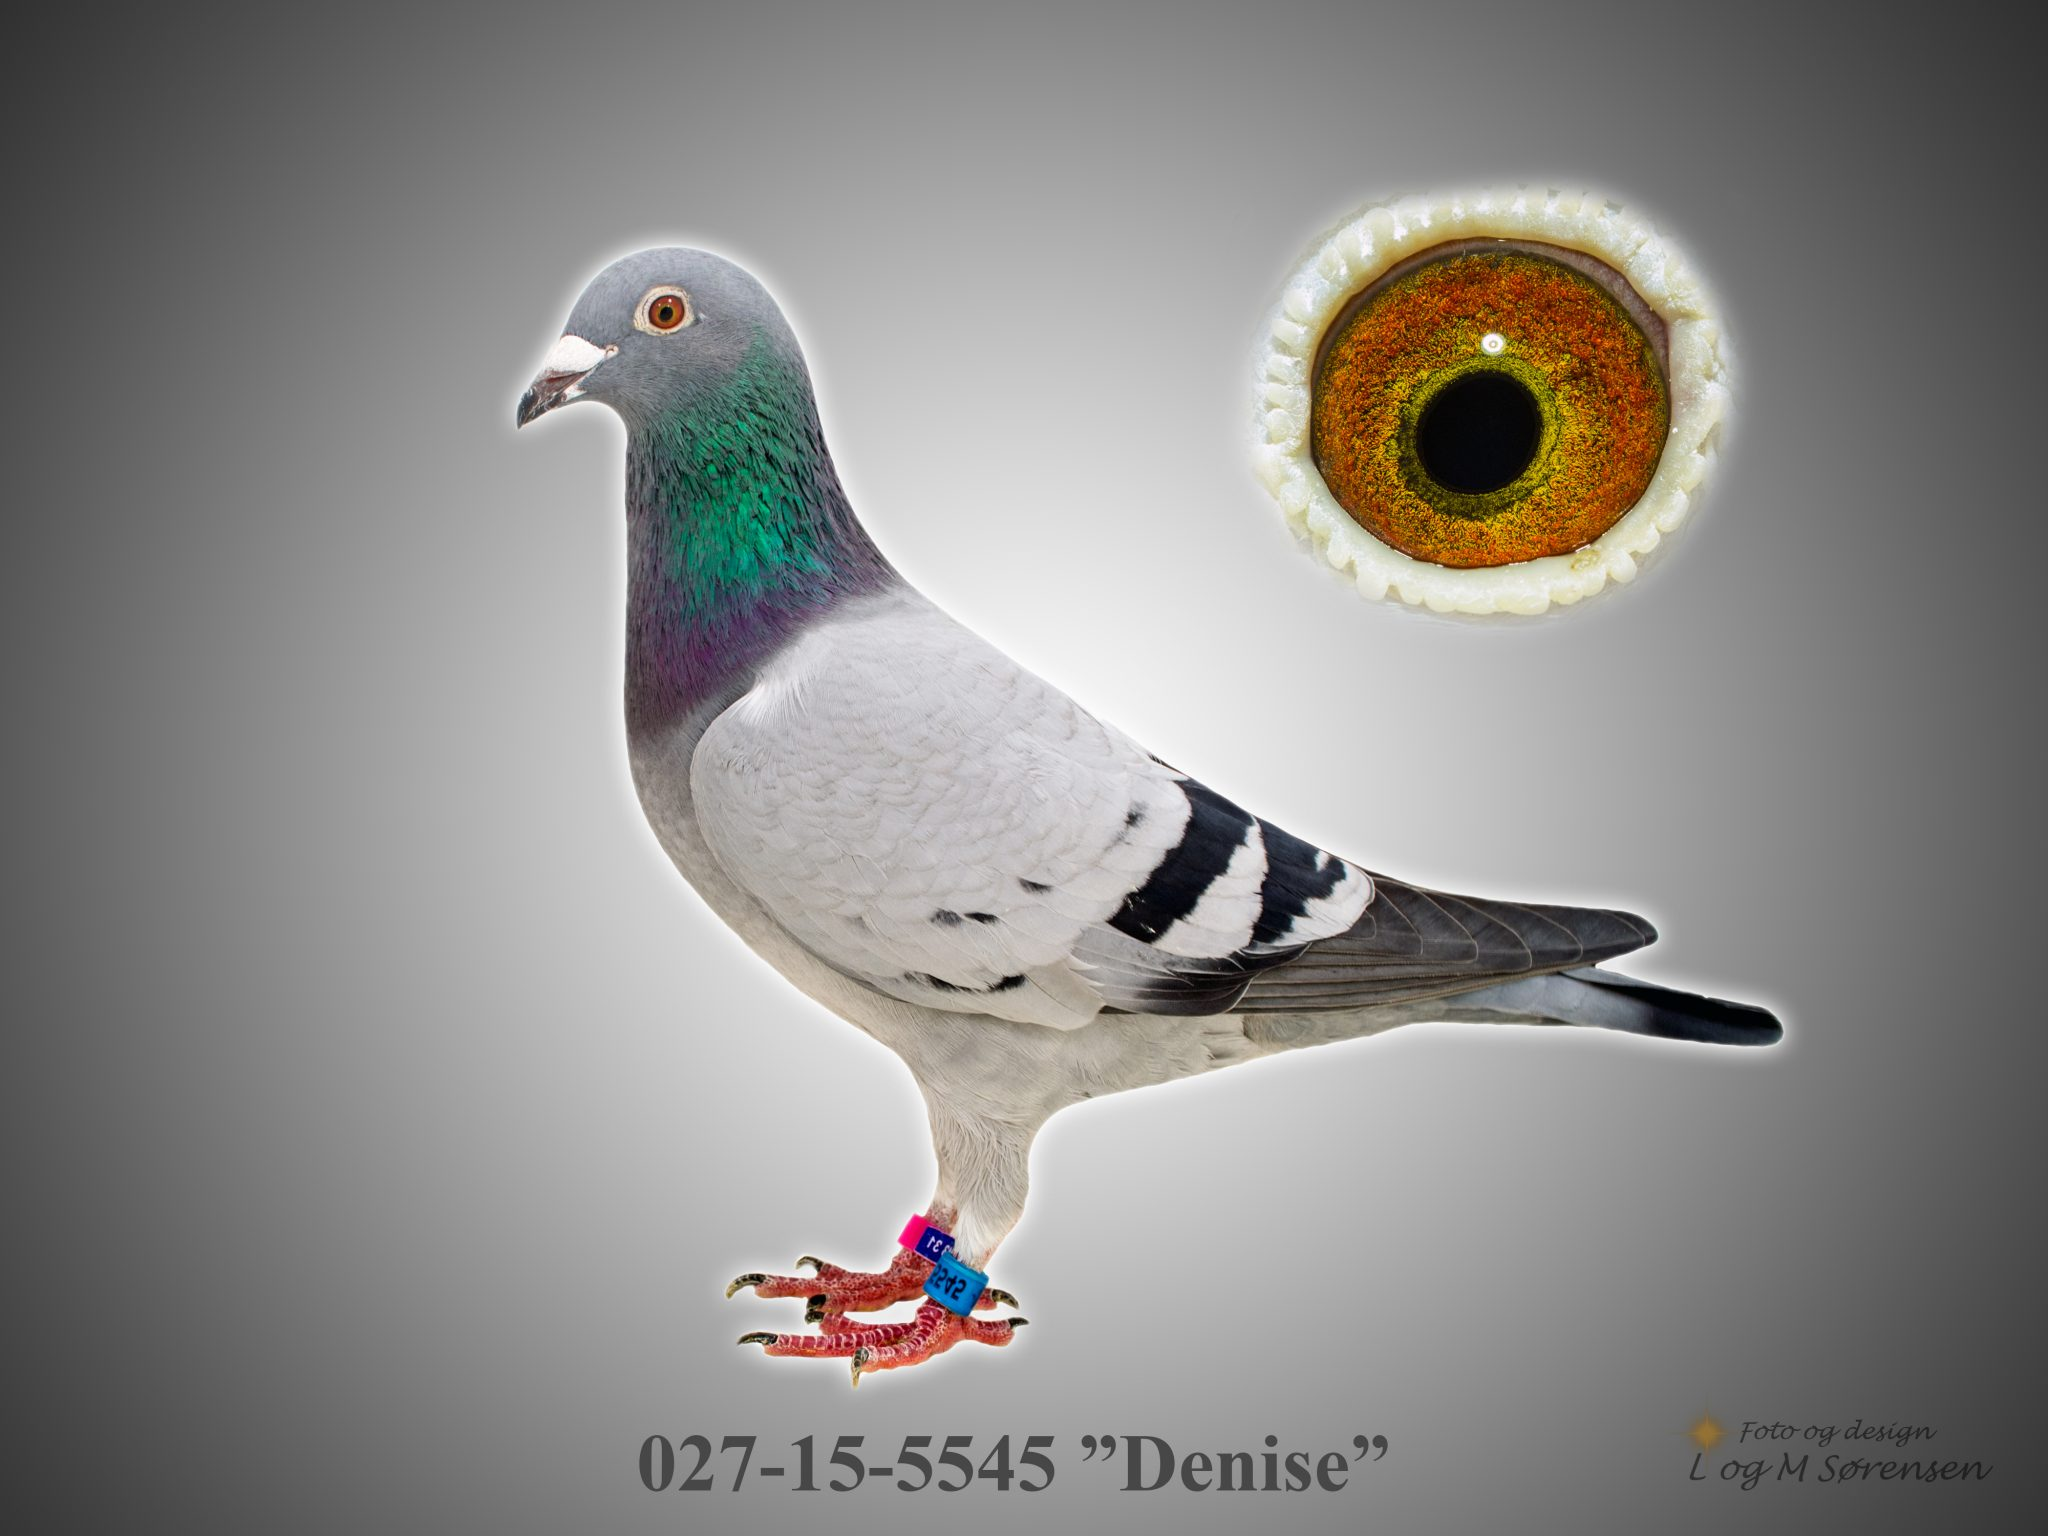 """Rede 17 A 027-15-5545 """"Denise"""""""